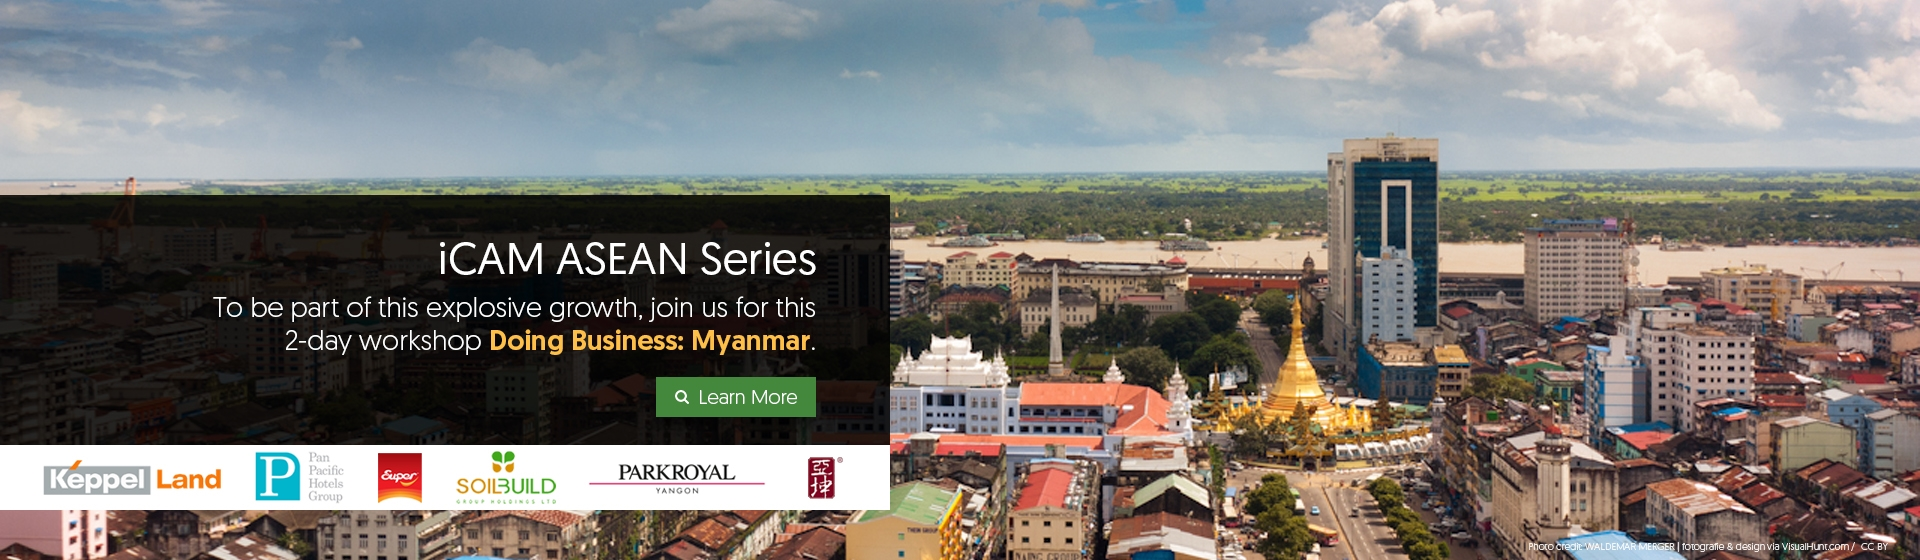 iCAM ASEAN Series - Doing Business in Myanmar